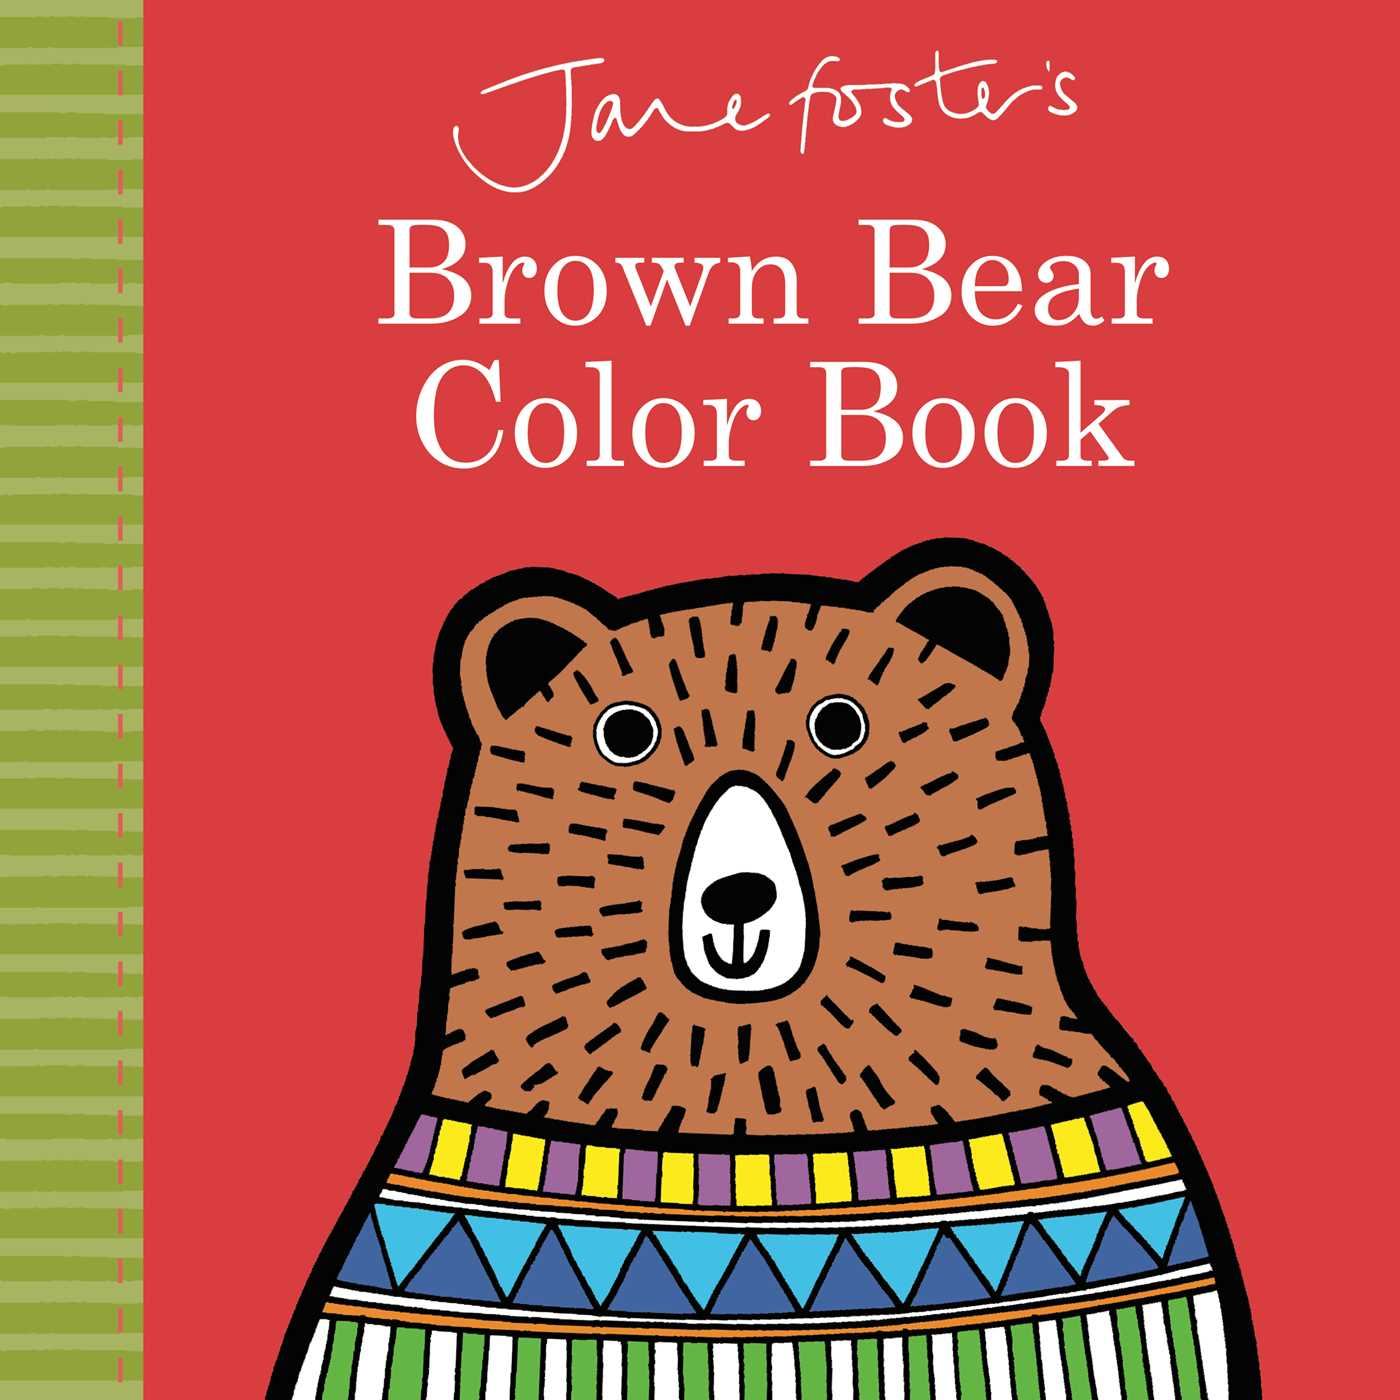 Jane Foster\'s Brown Bear Color Book | Book by Jane Foster | Official ...